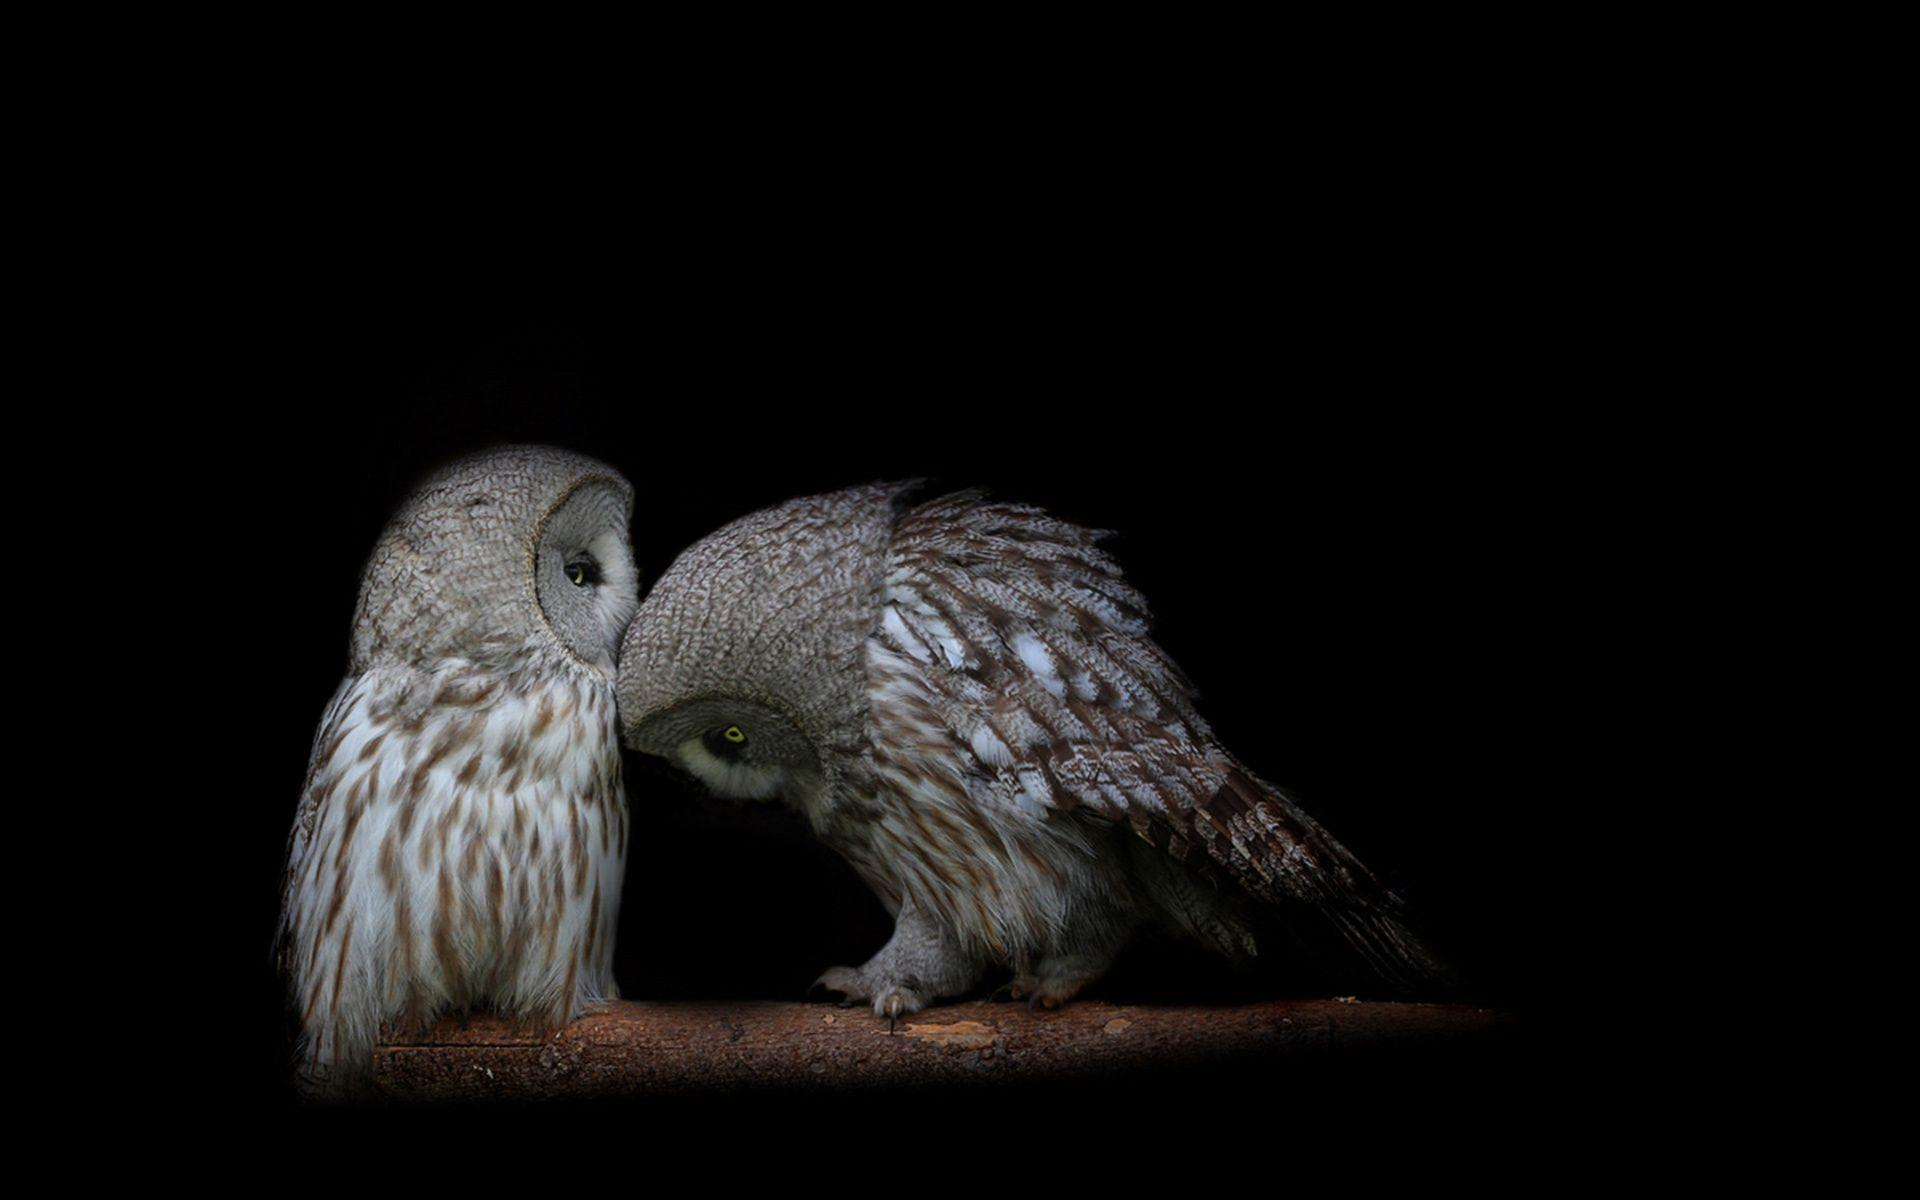 612 Owl Wallpapers | Owl Backgrounds Page 5